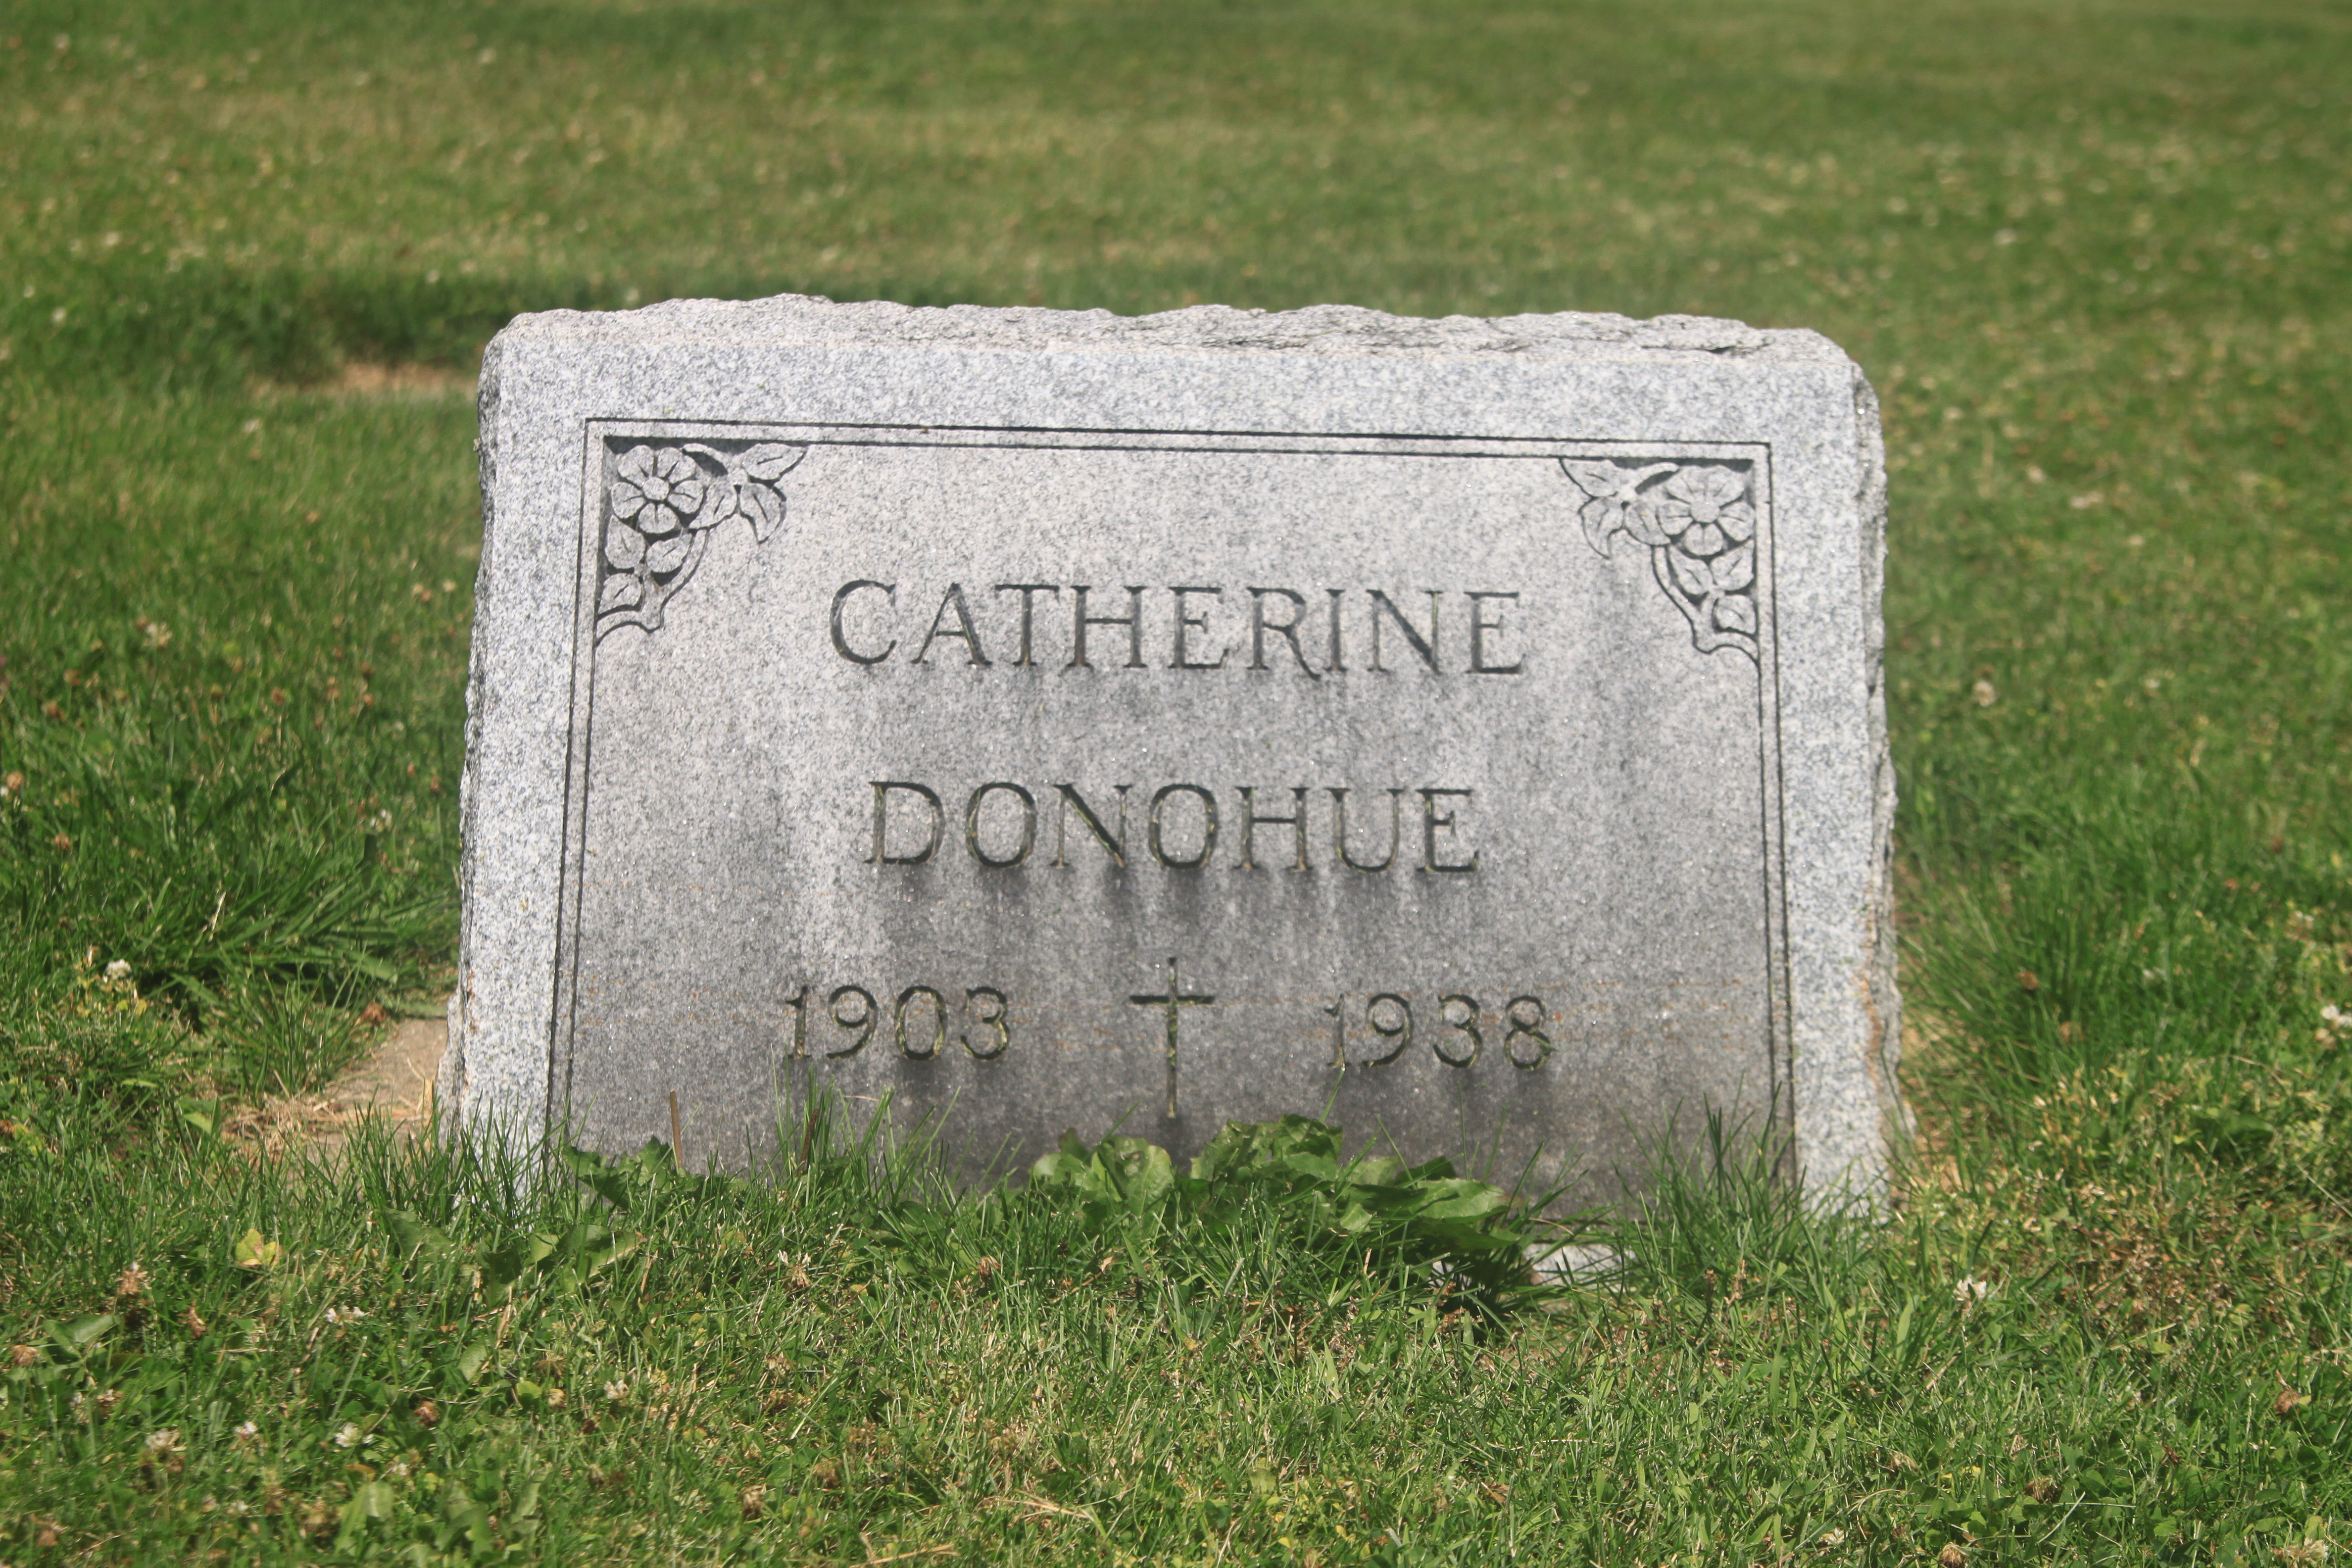 A memorial to Catherine Donahue. The town cemetery is filled with women who died young due to poisoning from the radium dial factories, including Peg Looney and Catherine Donohue.